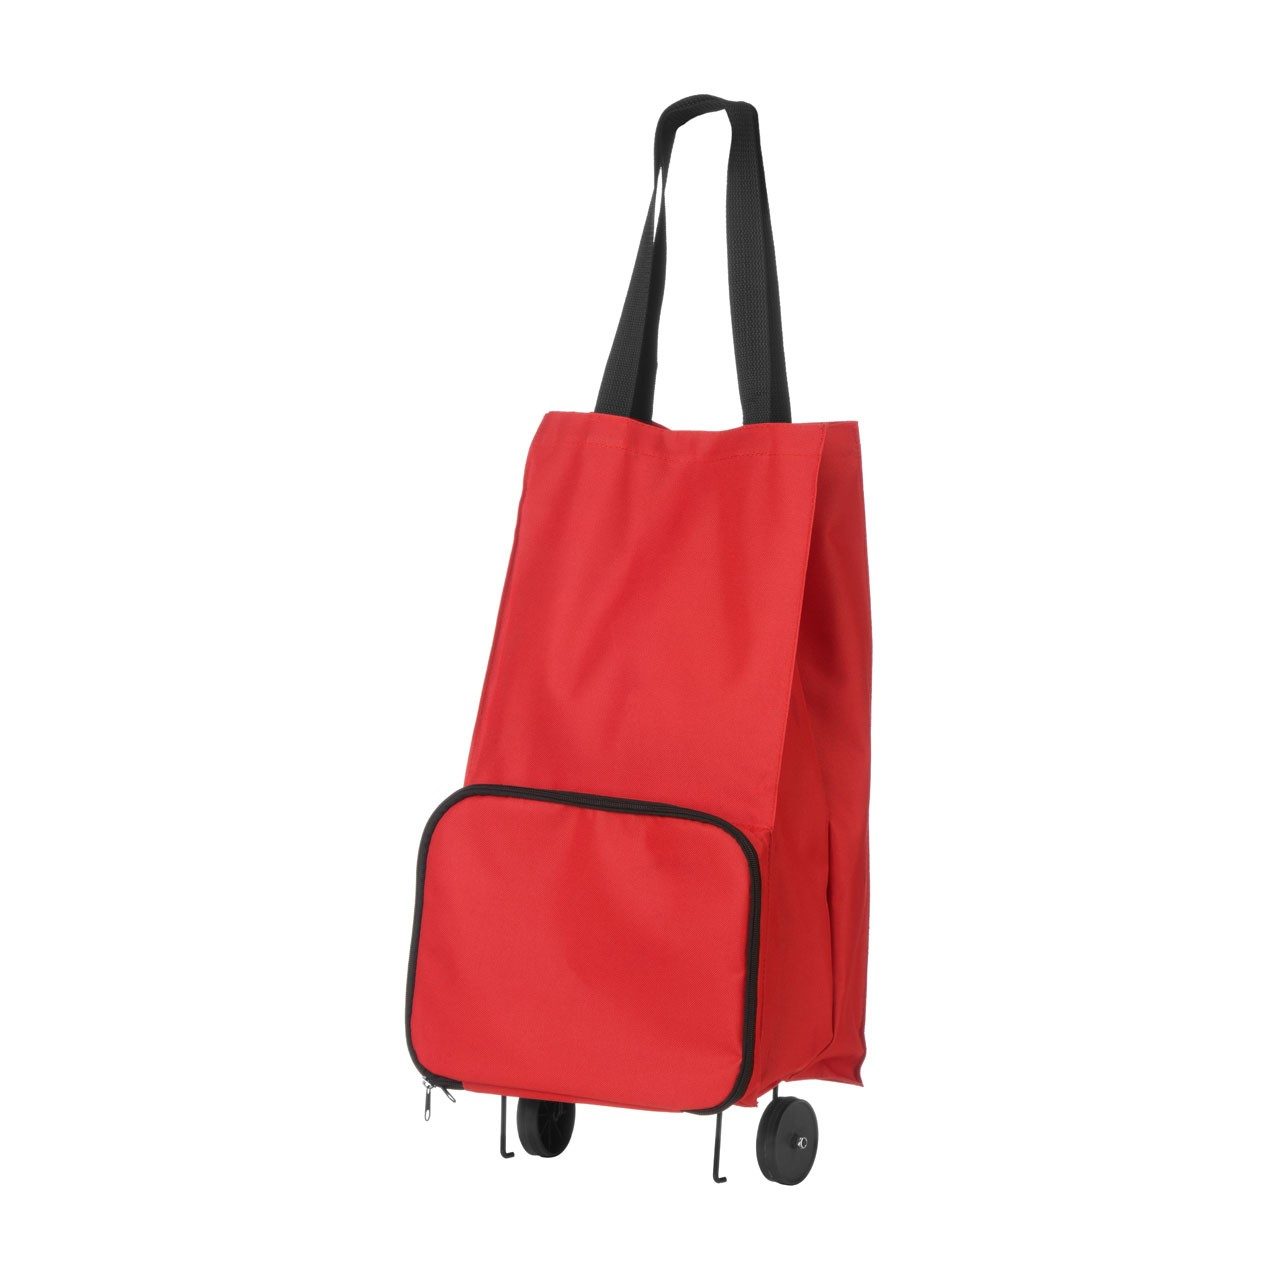 Prime Furnishing Oxford Trolley Bag - Red